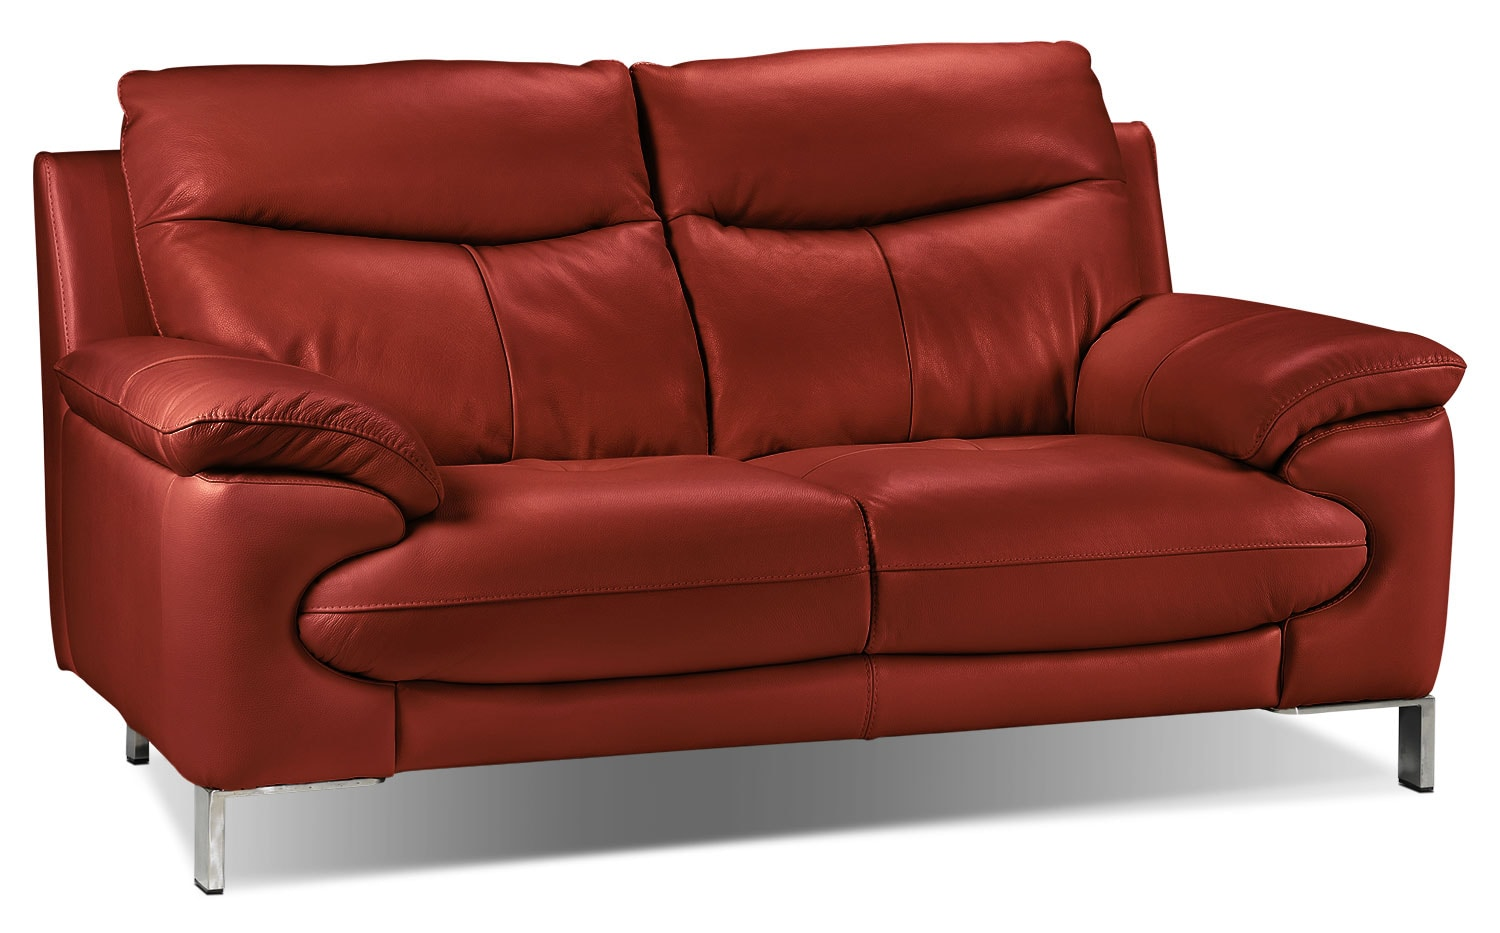 Living Room Furniture - Anika Loveseat - Red